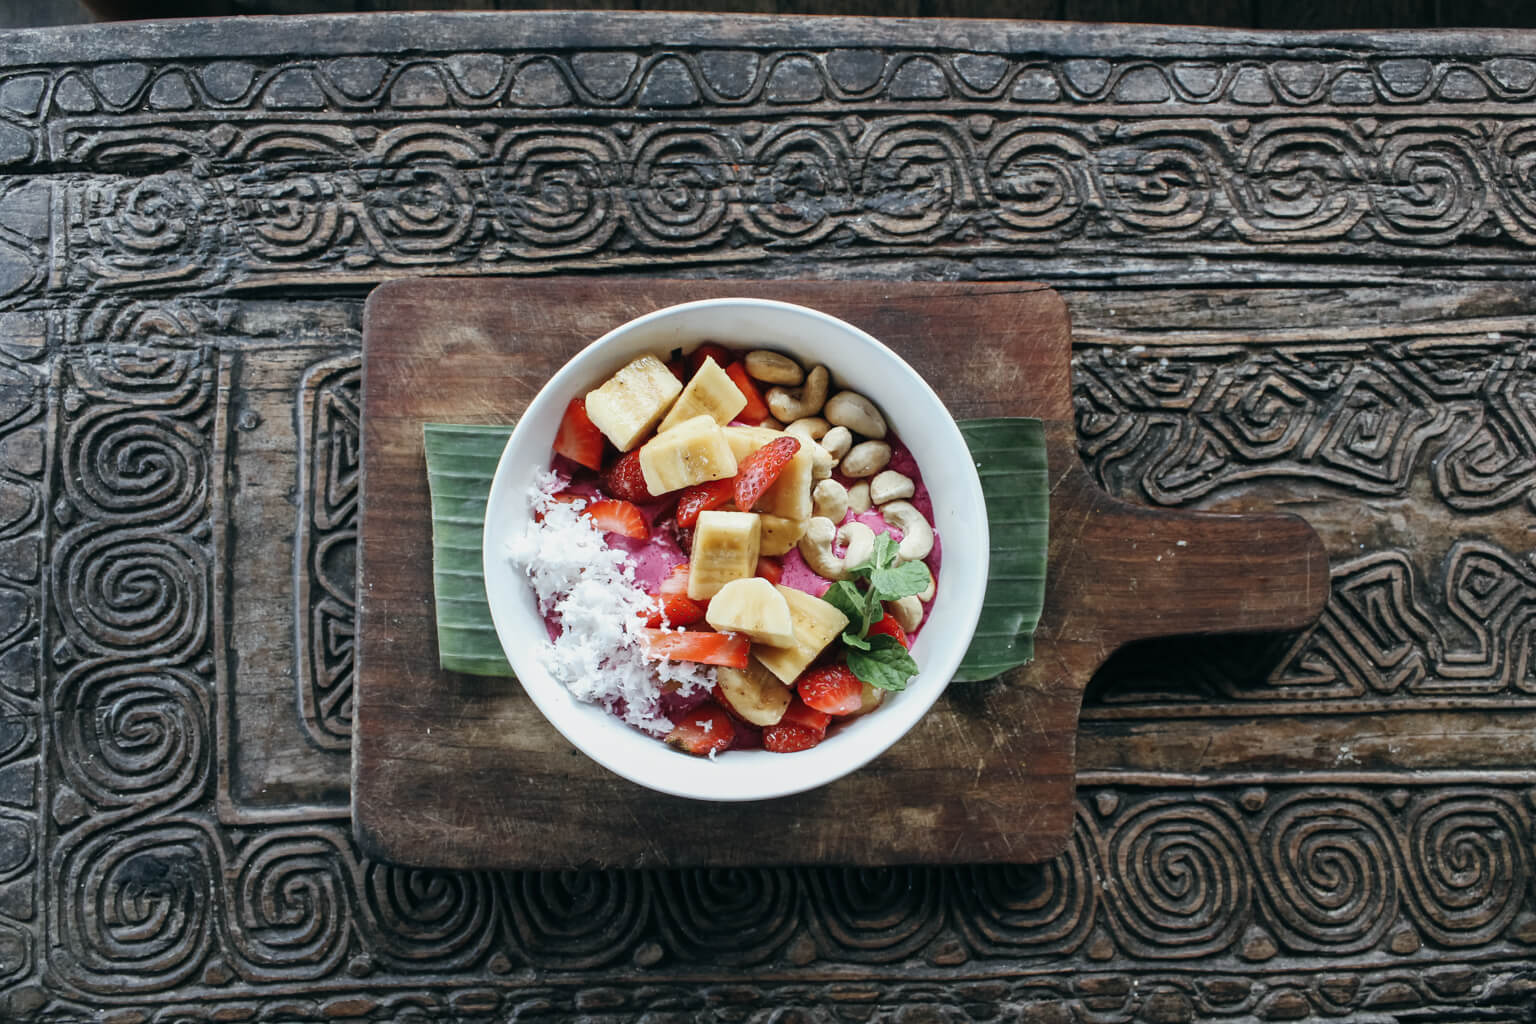 Bali City Guide: A healthy, real food, gluten-free travel guide to Bali (including Ubud, Seminyak, Canggu, the Bukit and more).